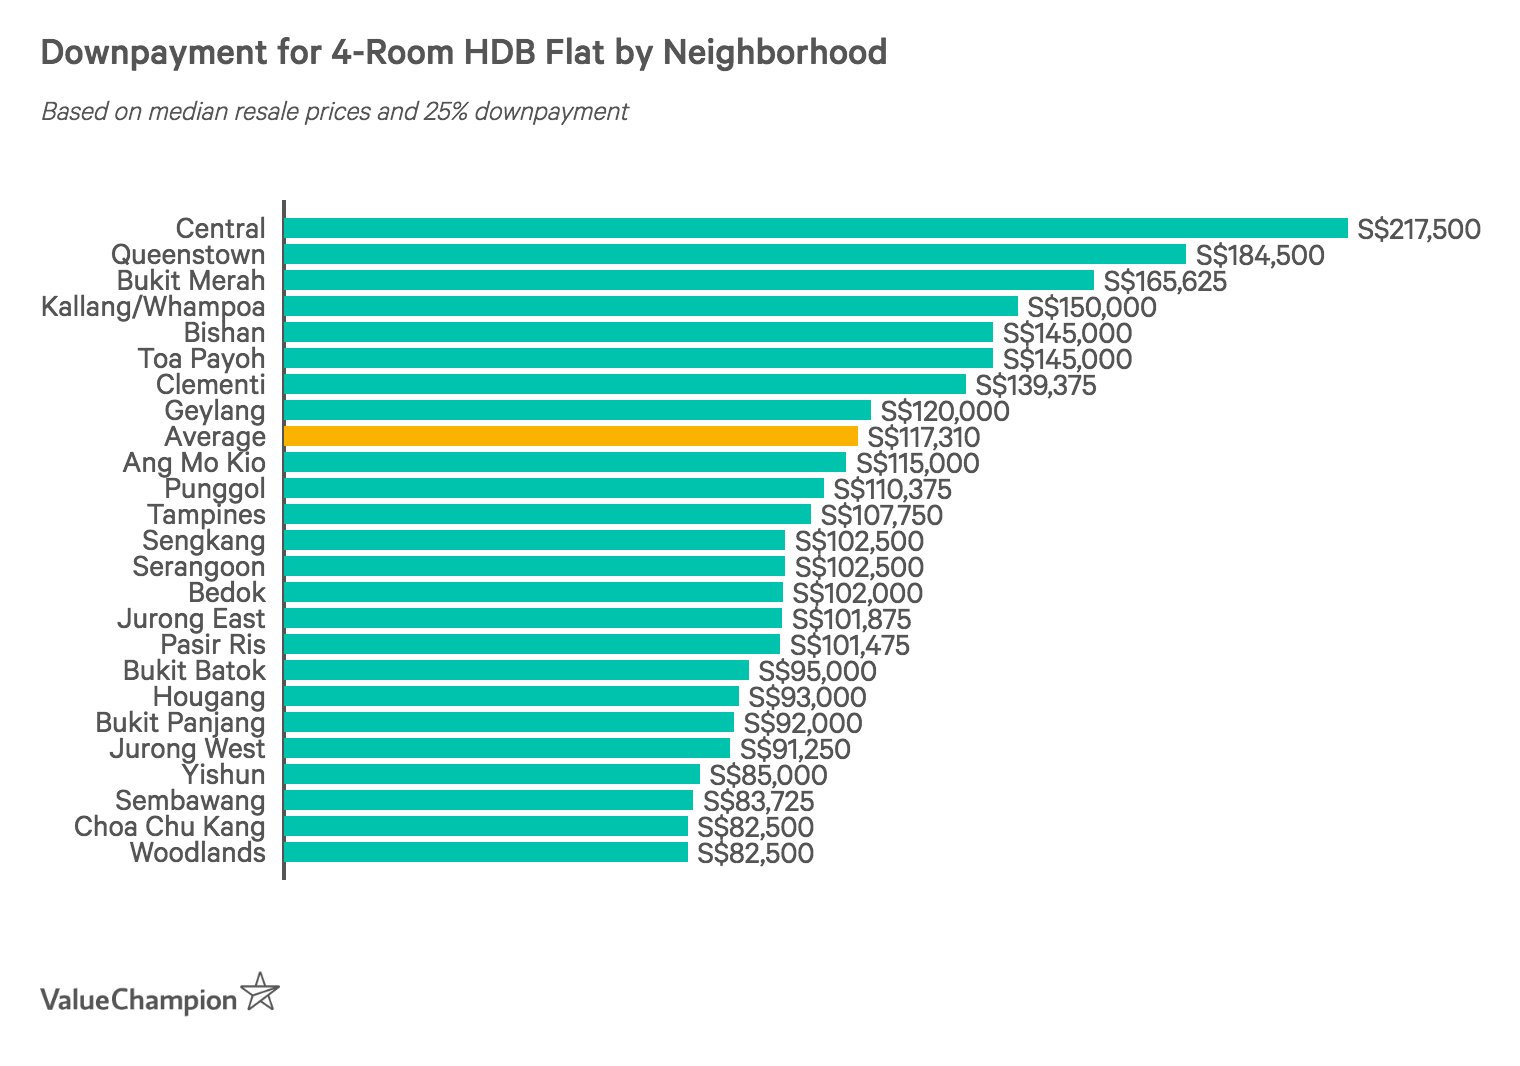 Downpayment for 4-Room HDB Flat by Neighborhood